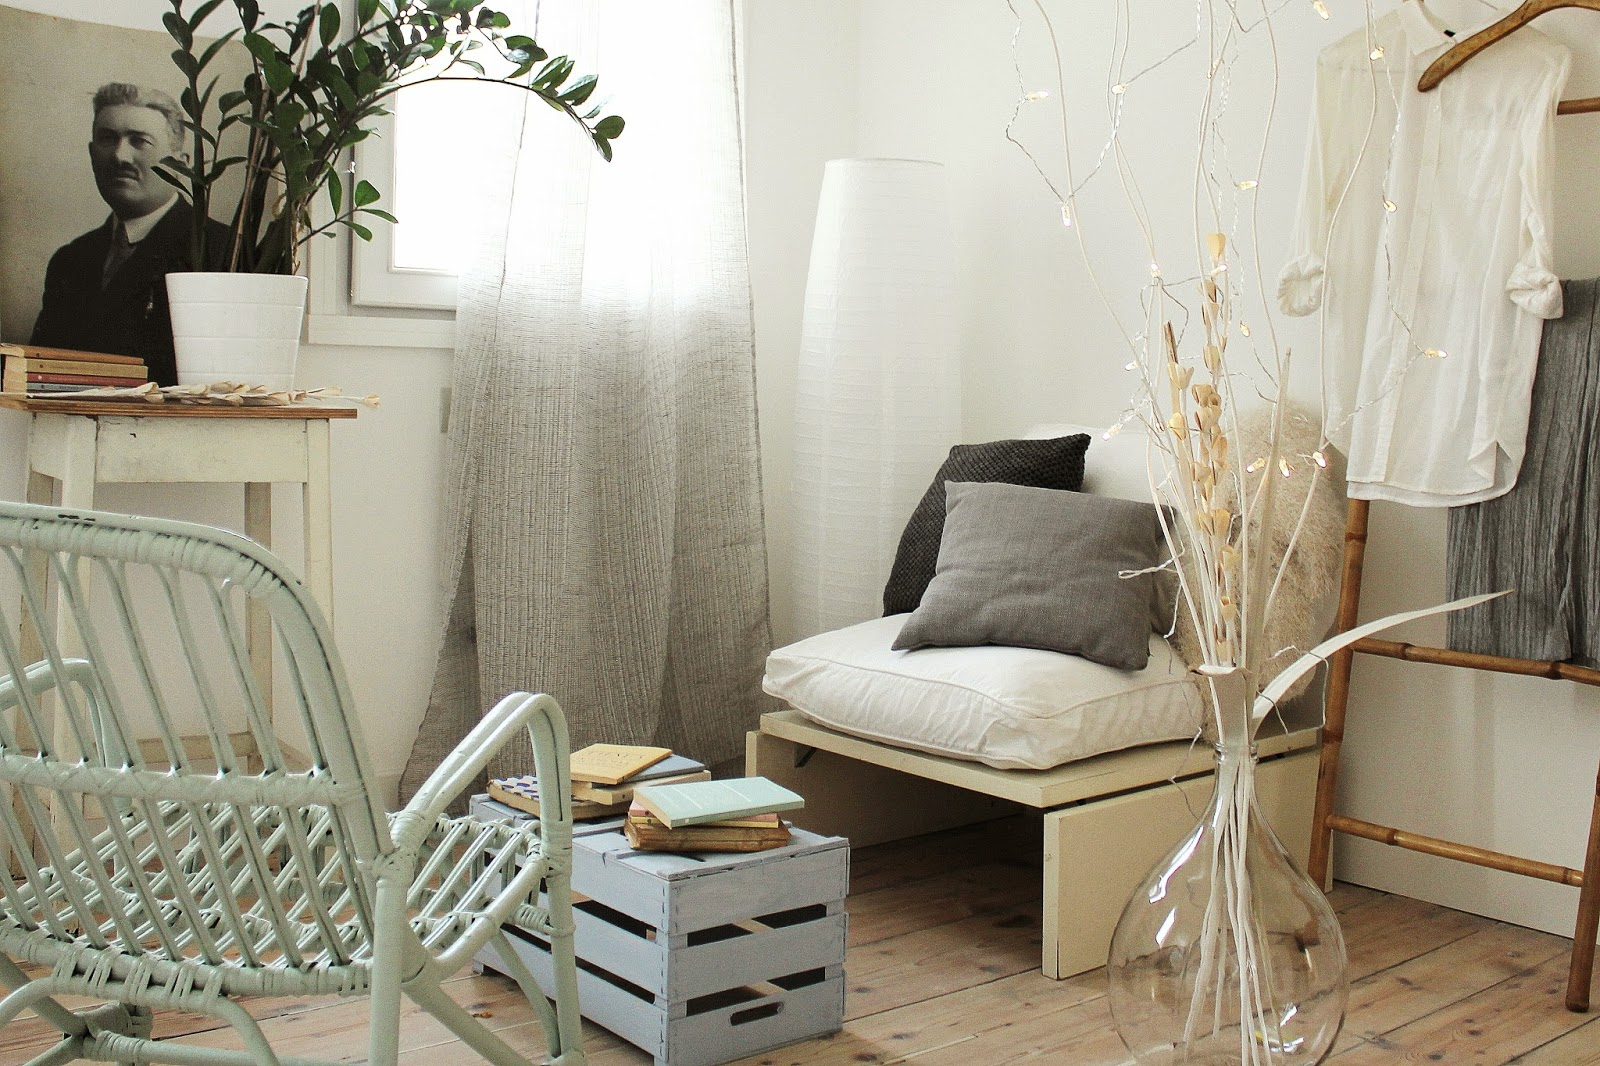 Storia di stile - my reading corner